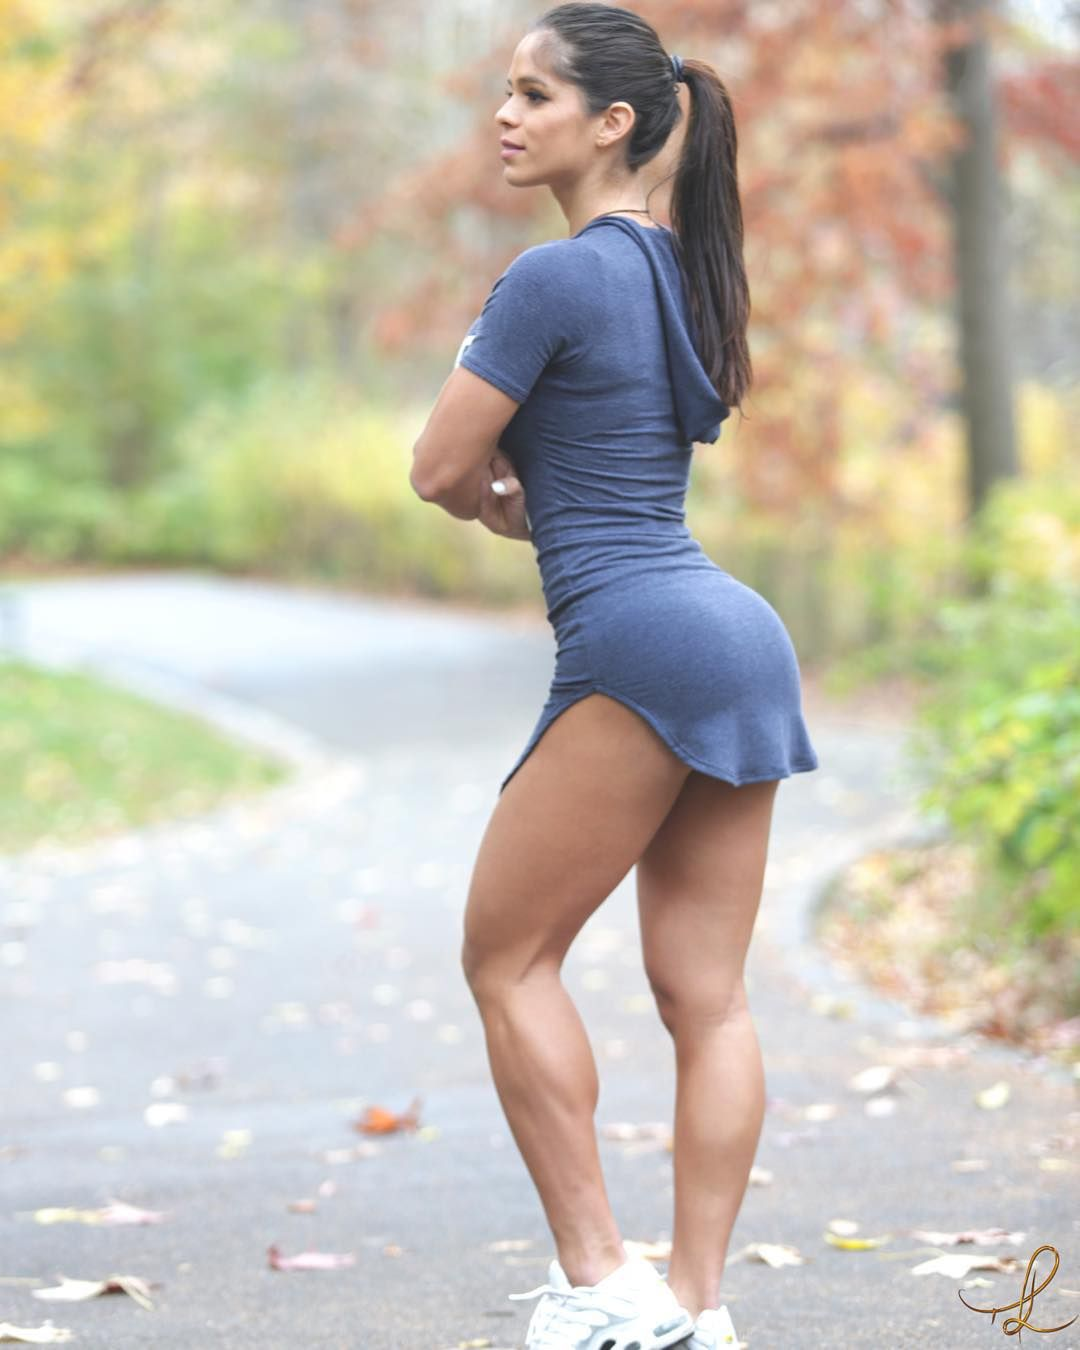 Michelle Lewin Centralpark Dayoff In Newyork Help Me Plz Kim Angelica Chocker Hole Dress Broken White